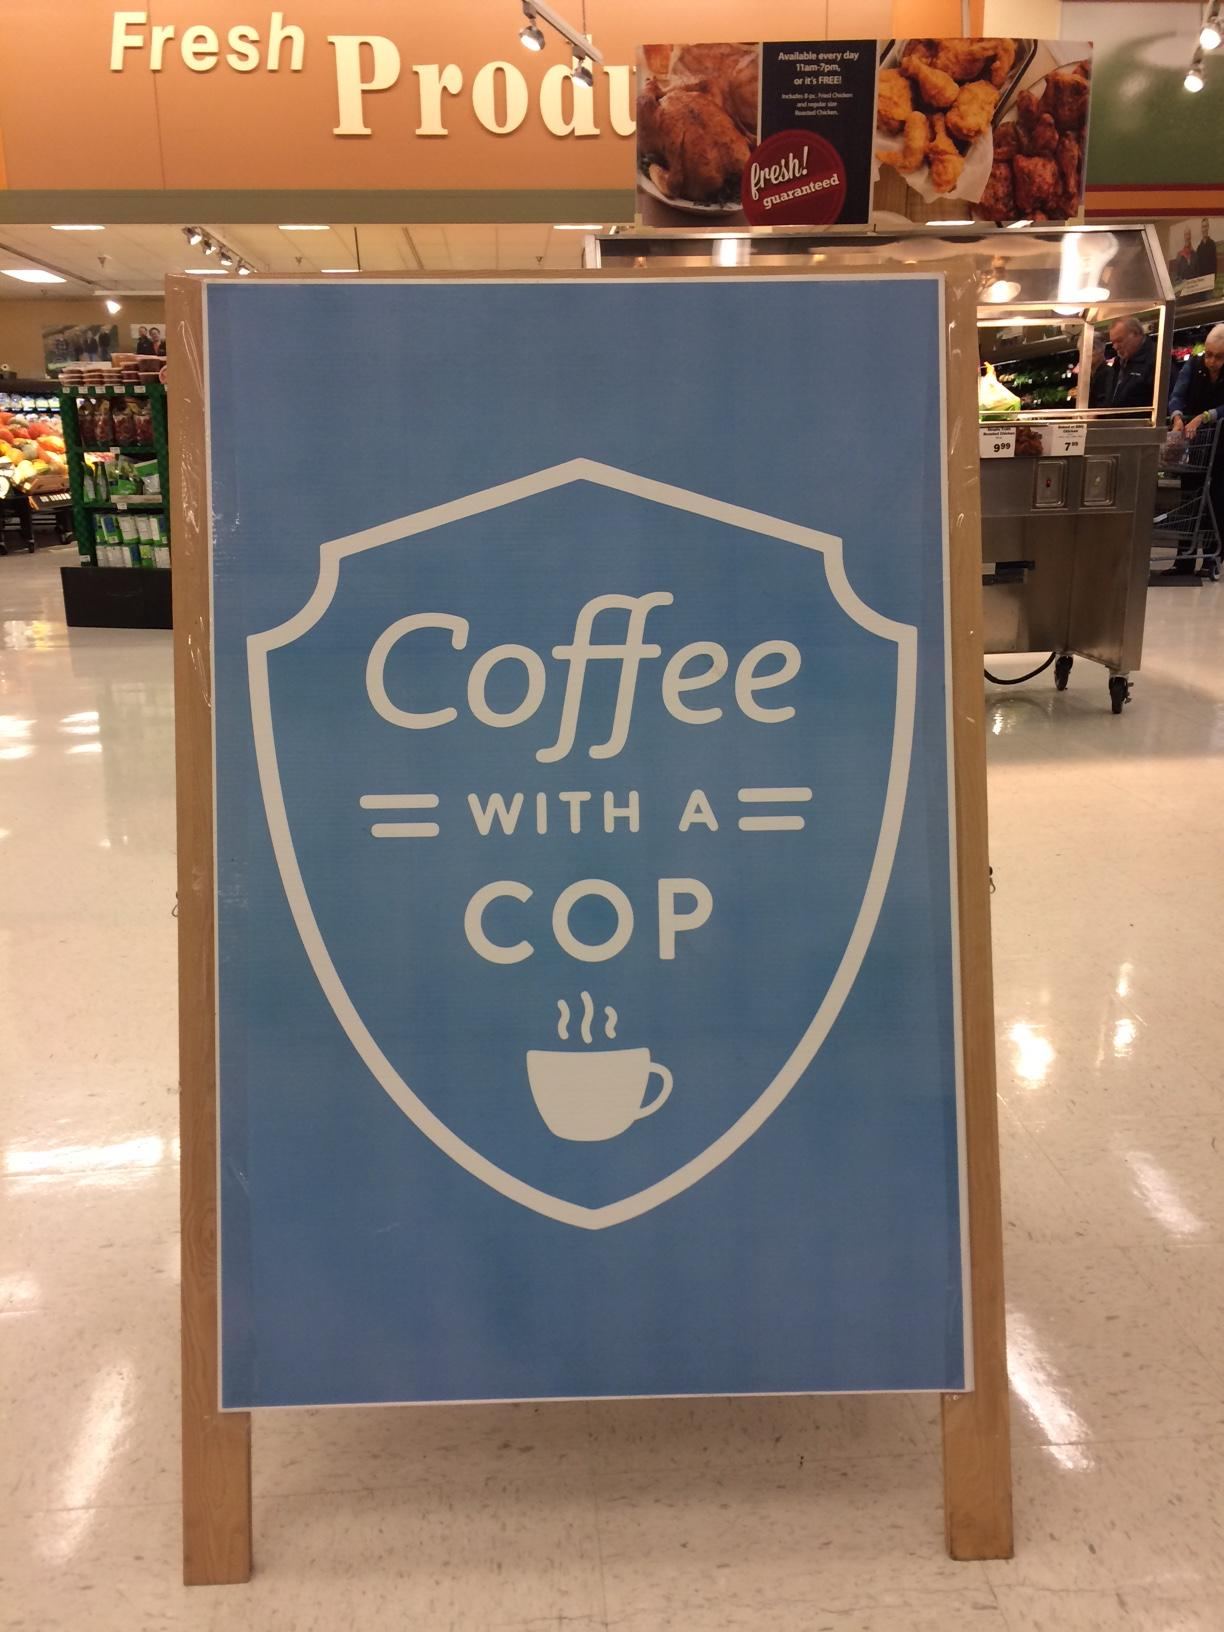 National Coffee with a Cop Day is celebrated across the country. It provides an opportunity for police officers to connect with the public. (SBG photo)